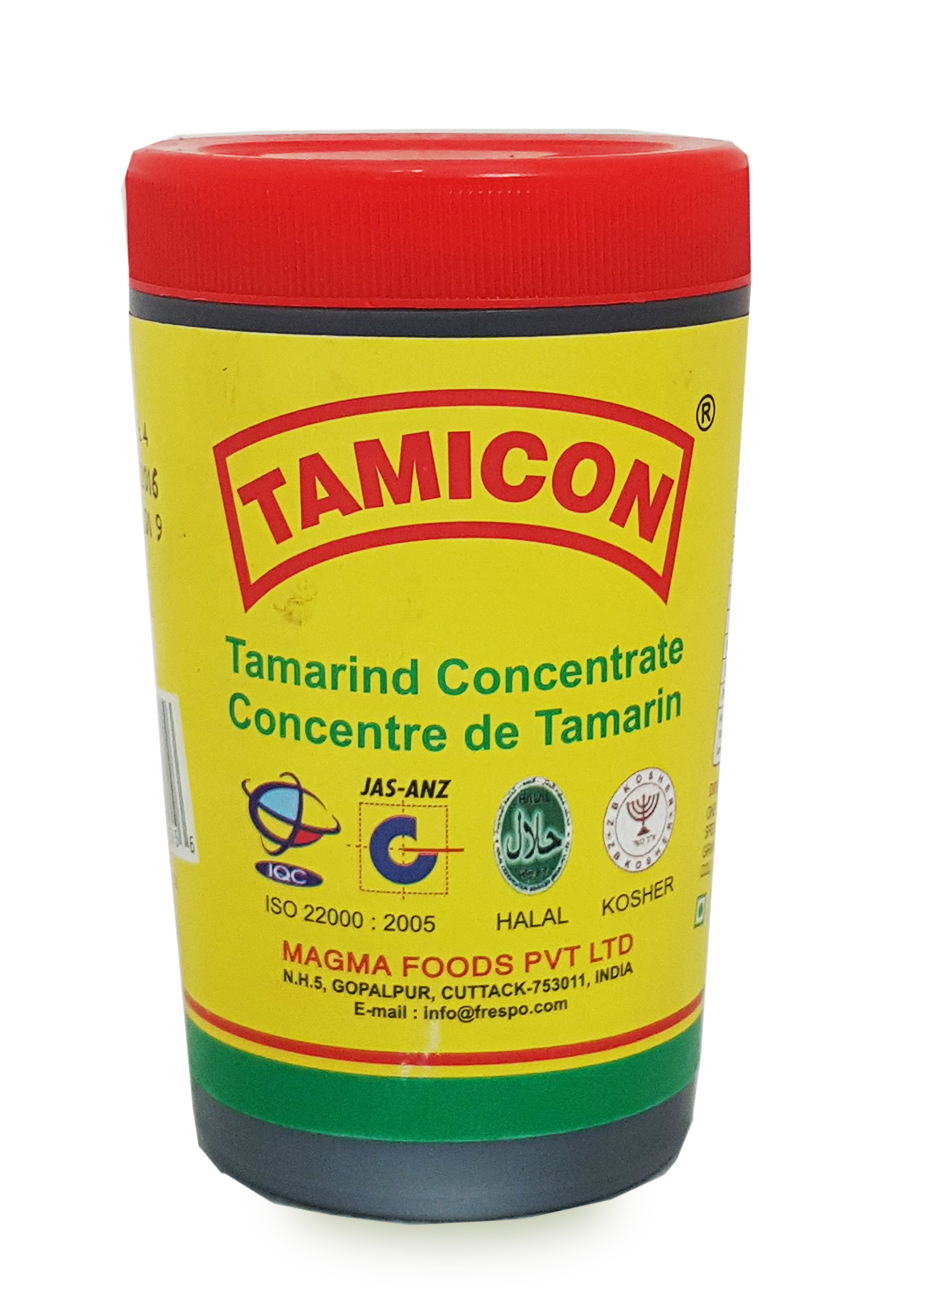 תרכיז תמרהינדי  - 400 גרם - TAMICON - הודו